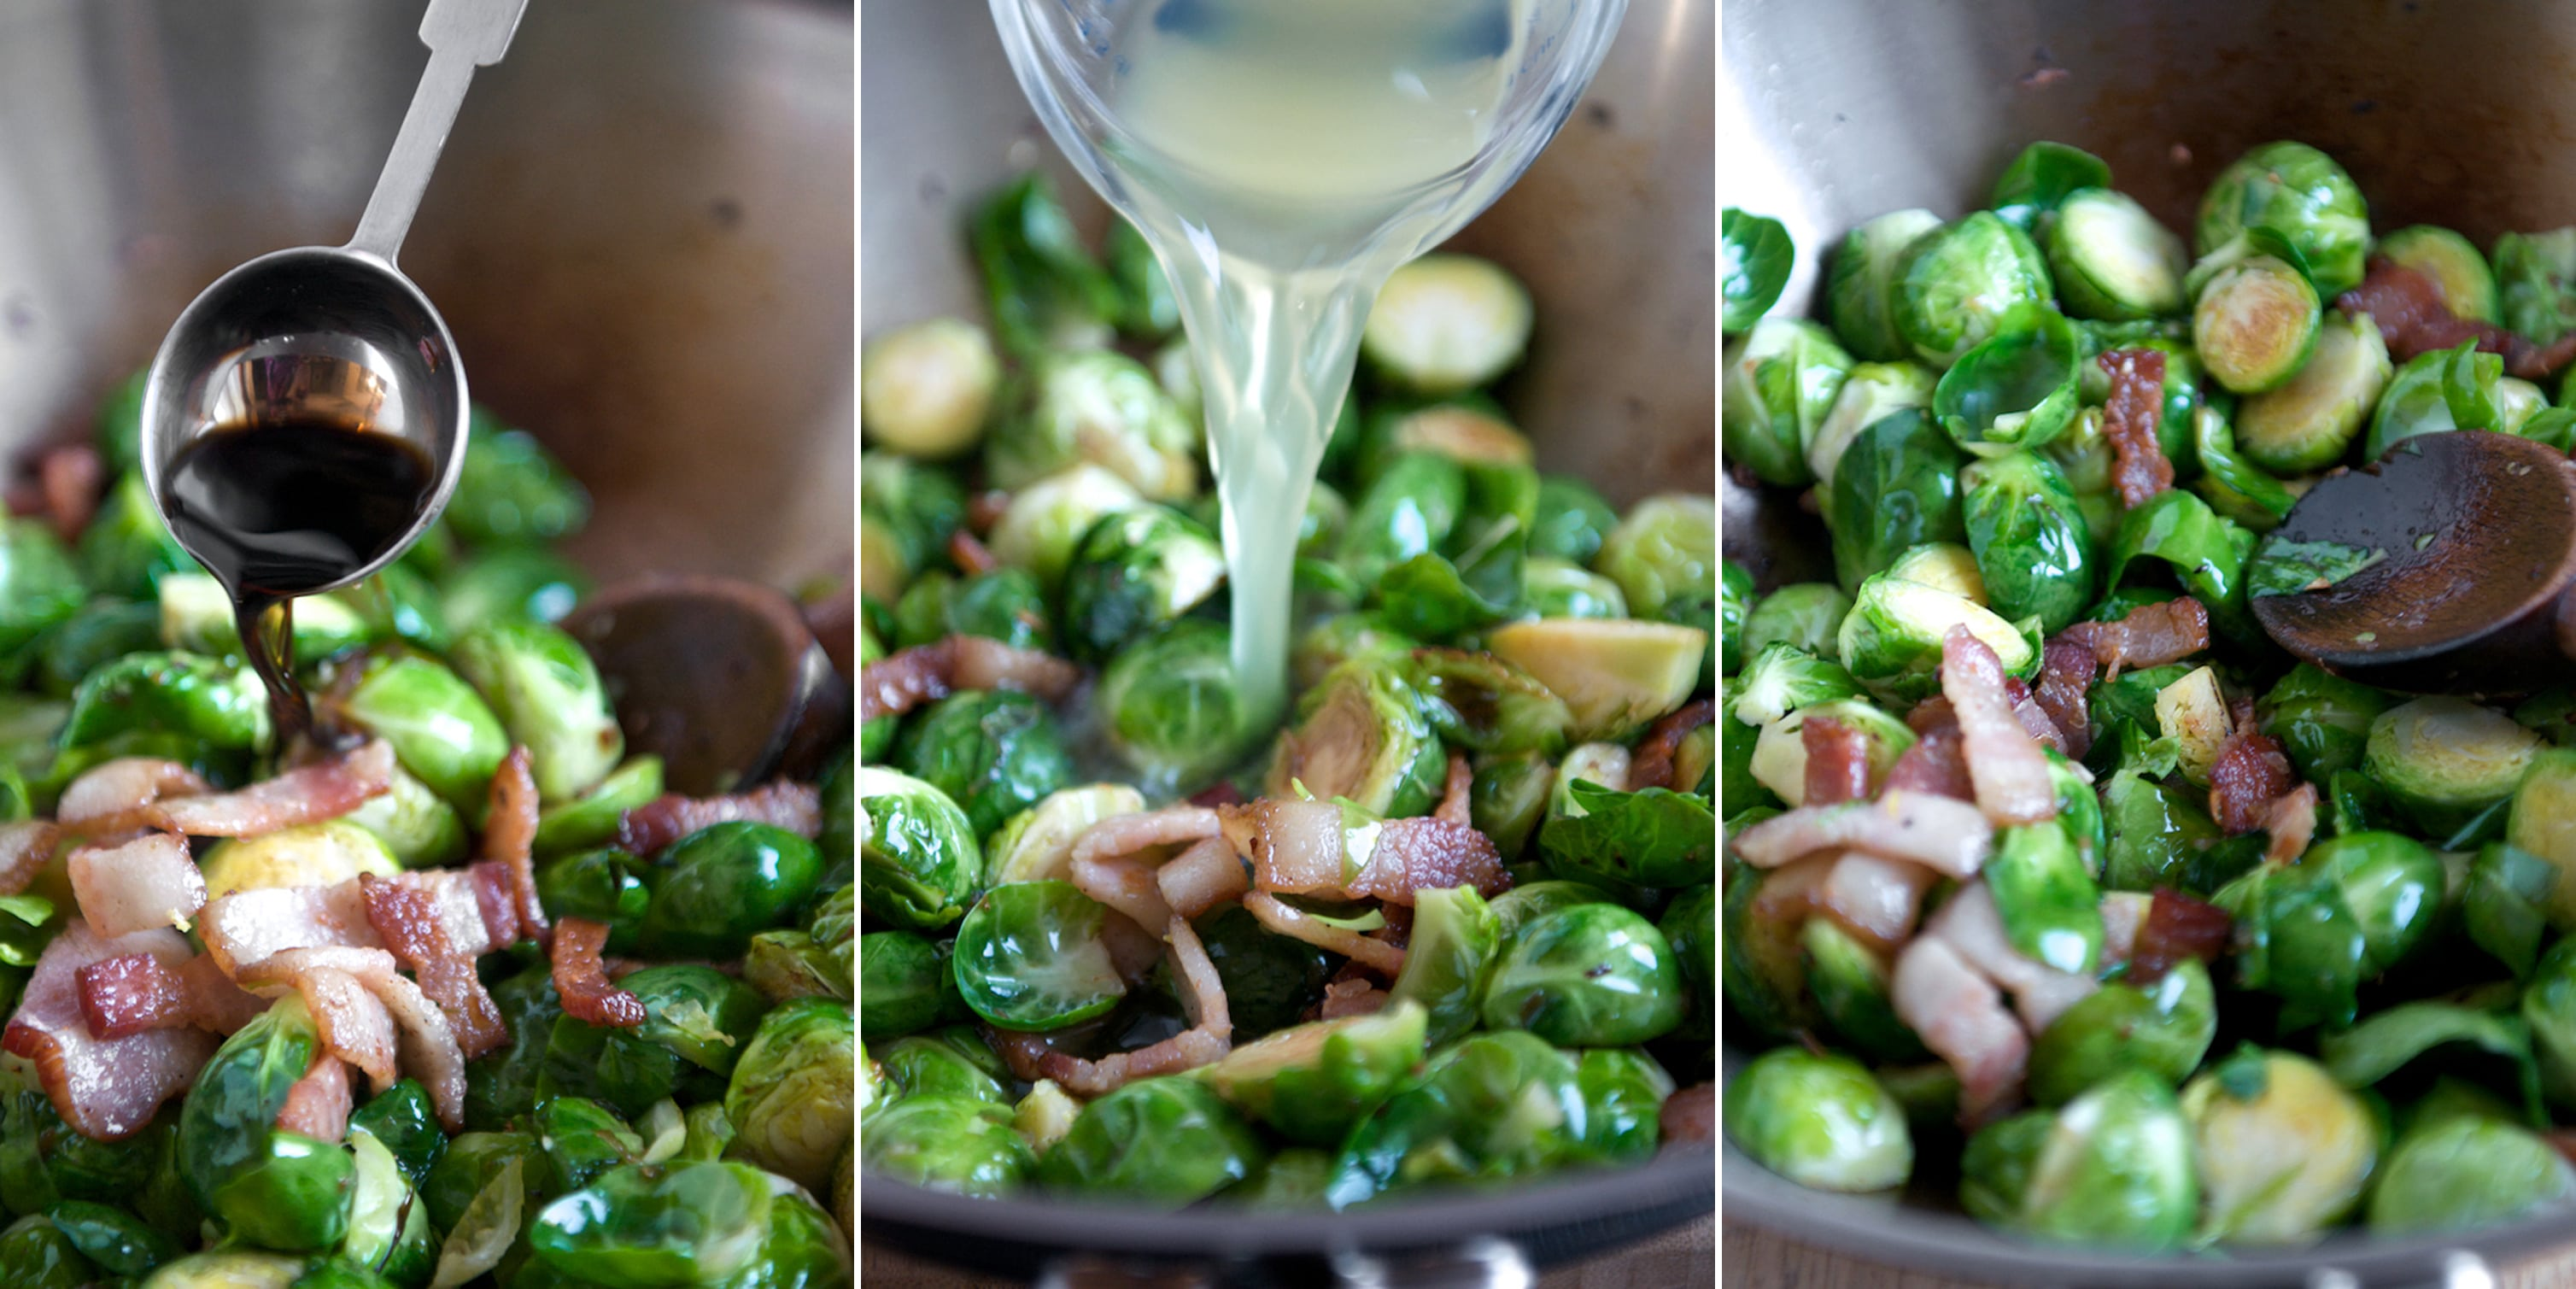 braised brussels sprouts recipe from whiteonricecouple.com